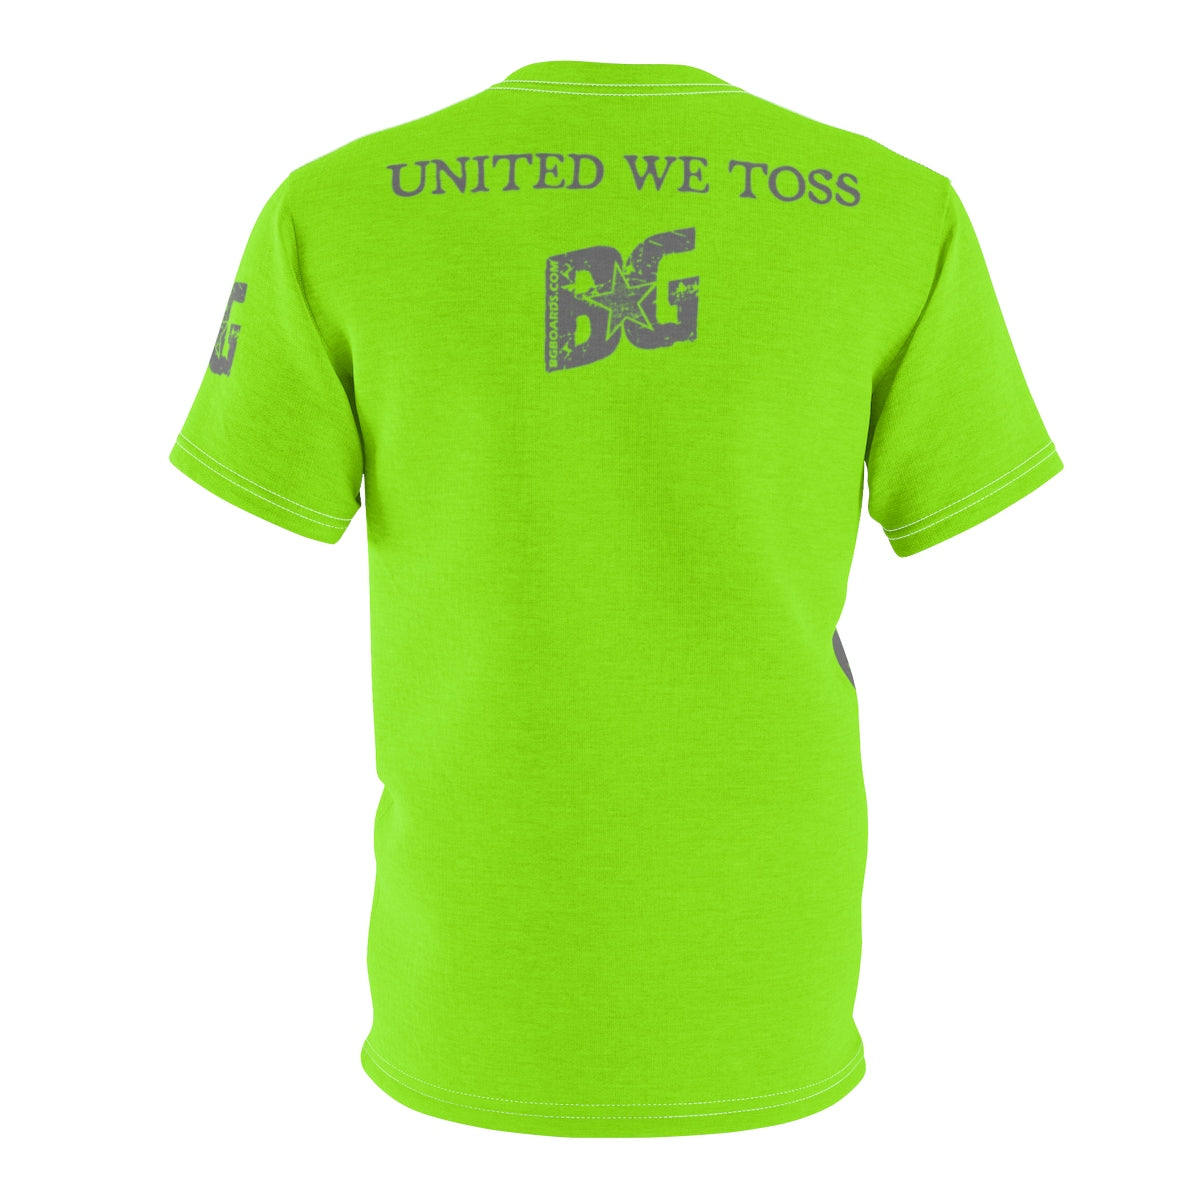 BG United We Toss Dri Fit Tee